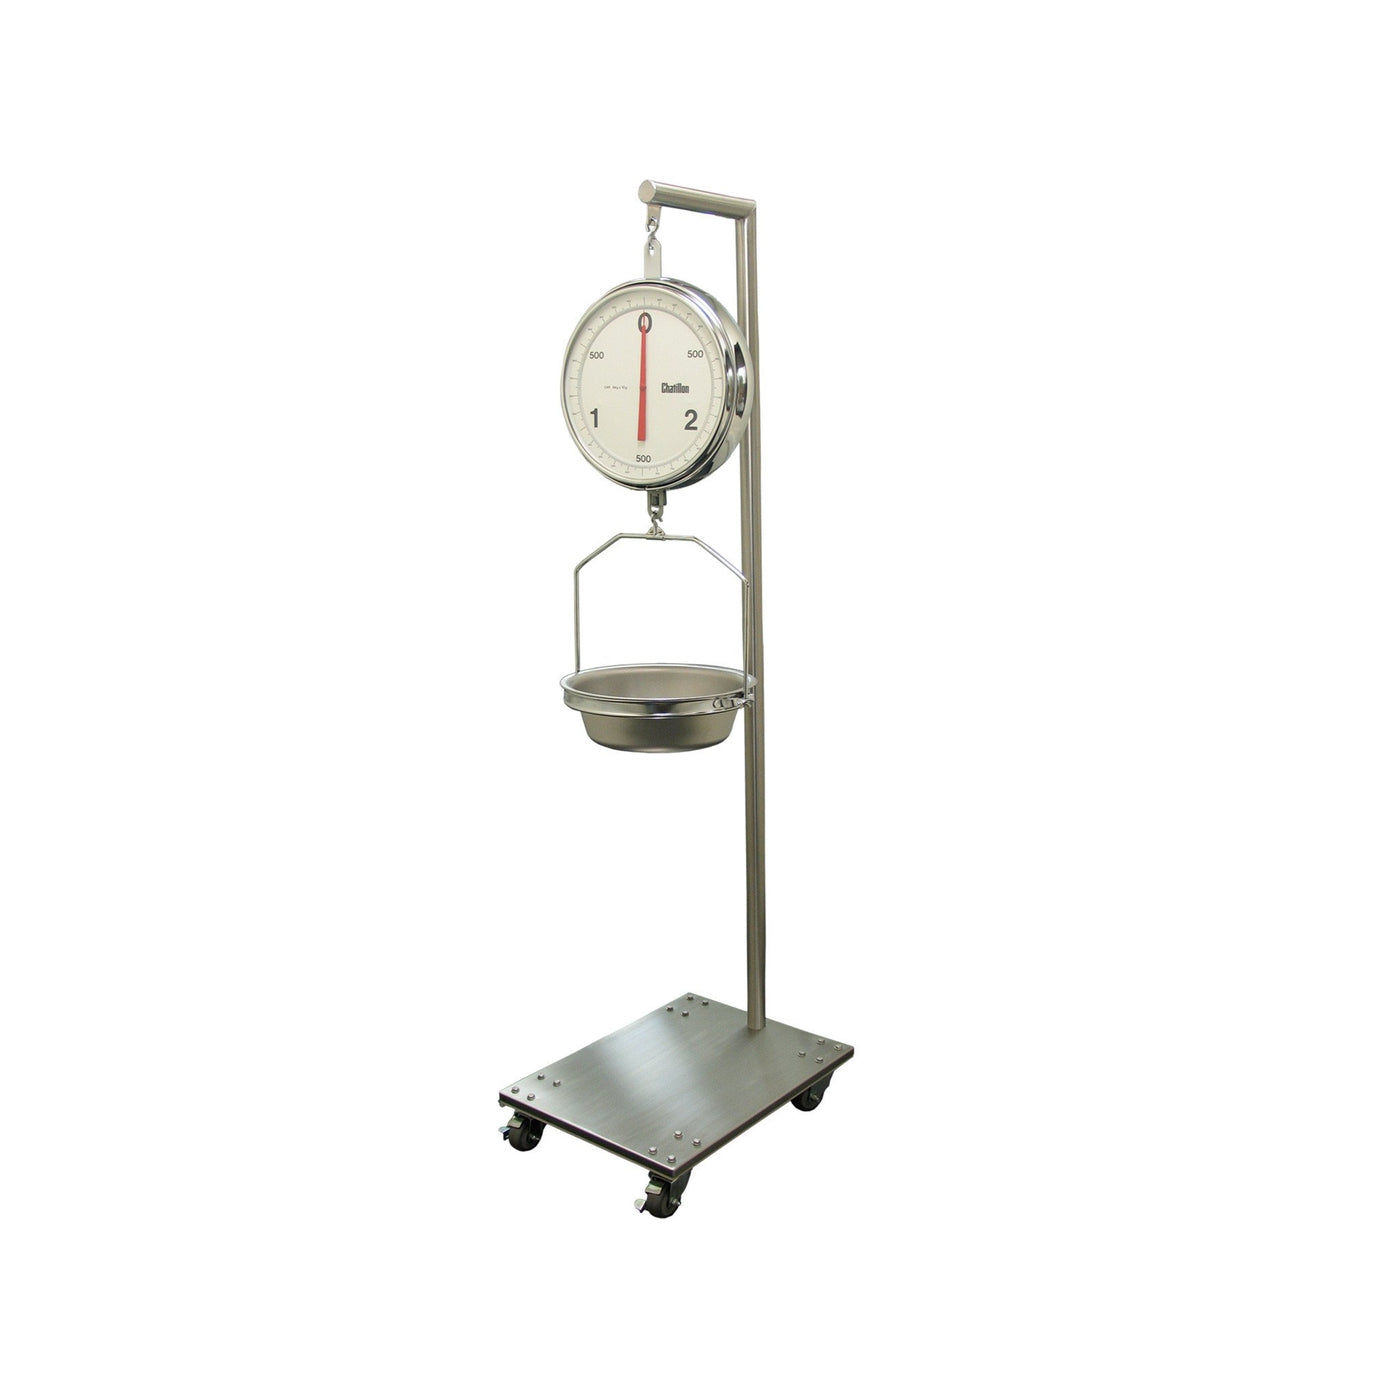 Portable Scale Hanger-Laboratory Accessory-Mortech Manufacturing Company Inc. Quality Stainless Steel Autopsy, Morgue, Funeral Home, Necropsy, Veterinary / Anatomy, Dissection Equipment and Accessories